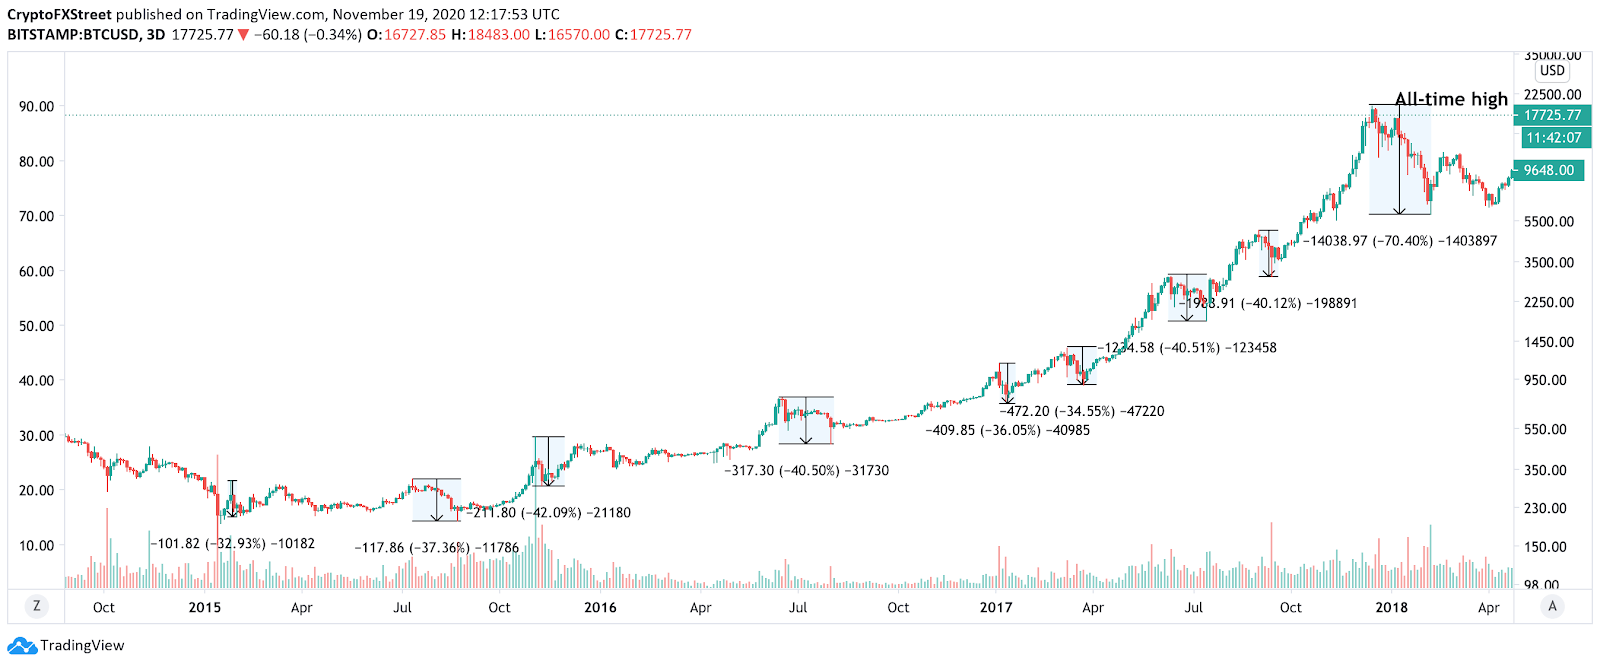 BTC/USD chart showing previous dips